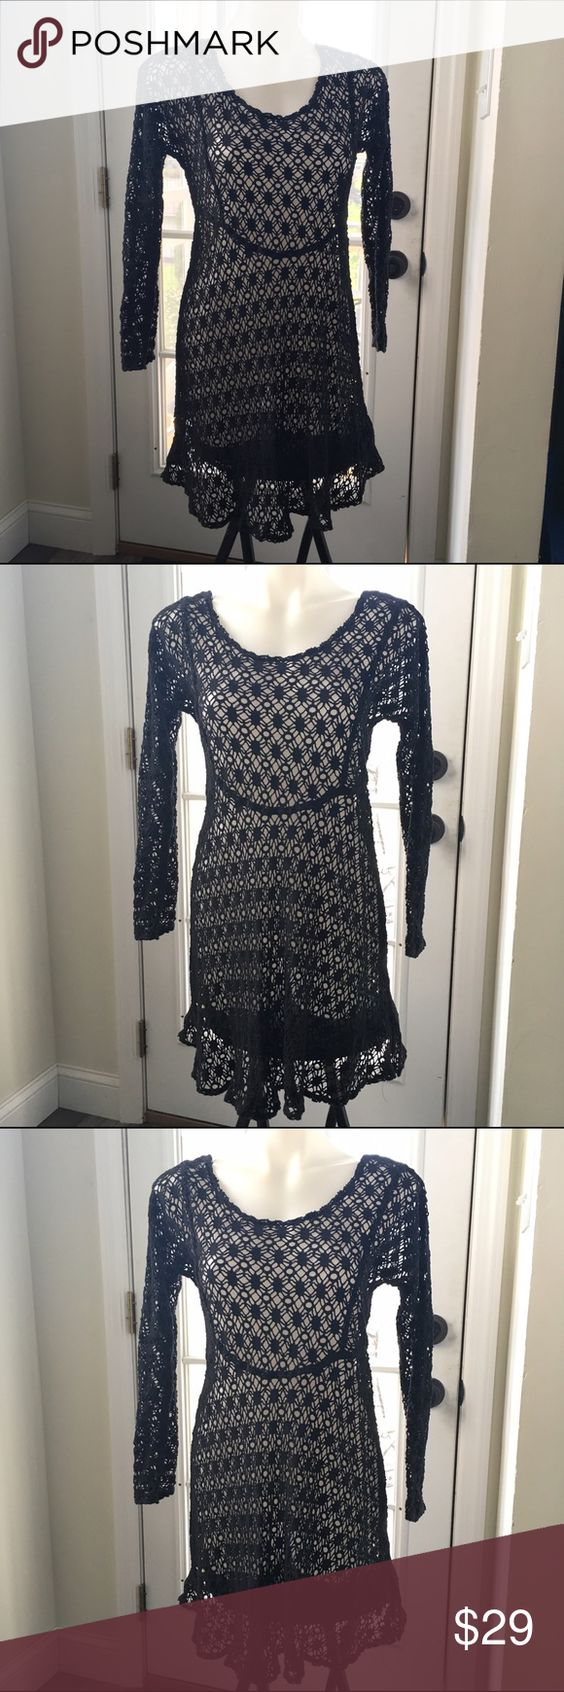 Black Crochet Cut Out Knit Sweater Dress Excellent Preowned Condition Size M/L will not fit XL. There is no inside tag, however this is a quality made piece. Unknown Dresses Midi